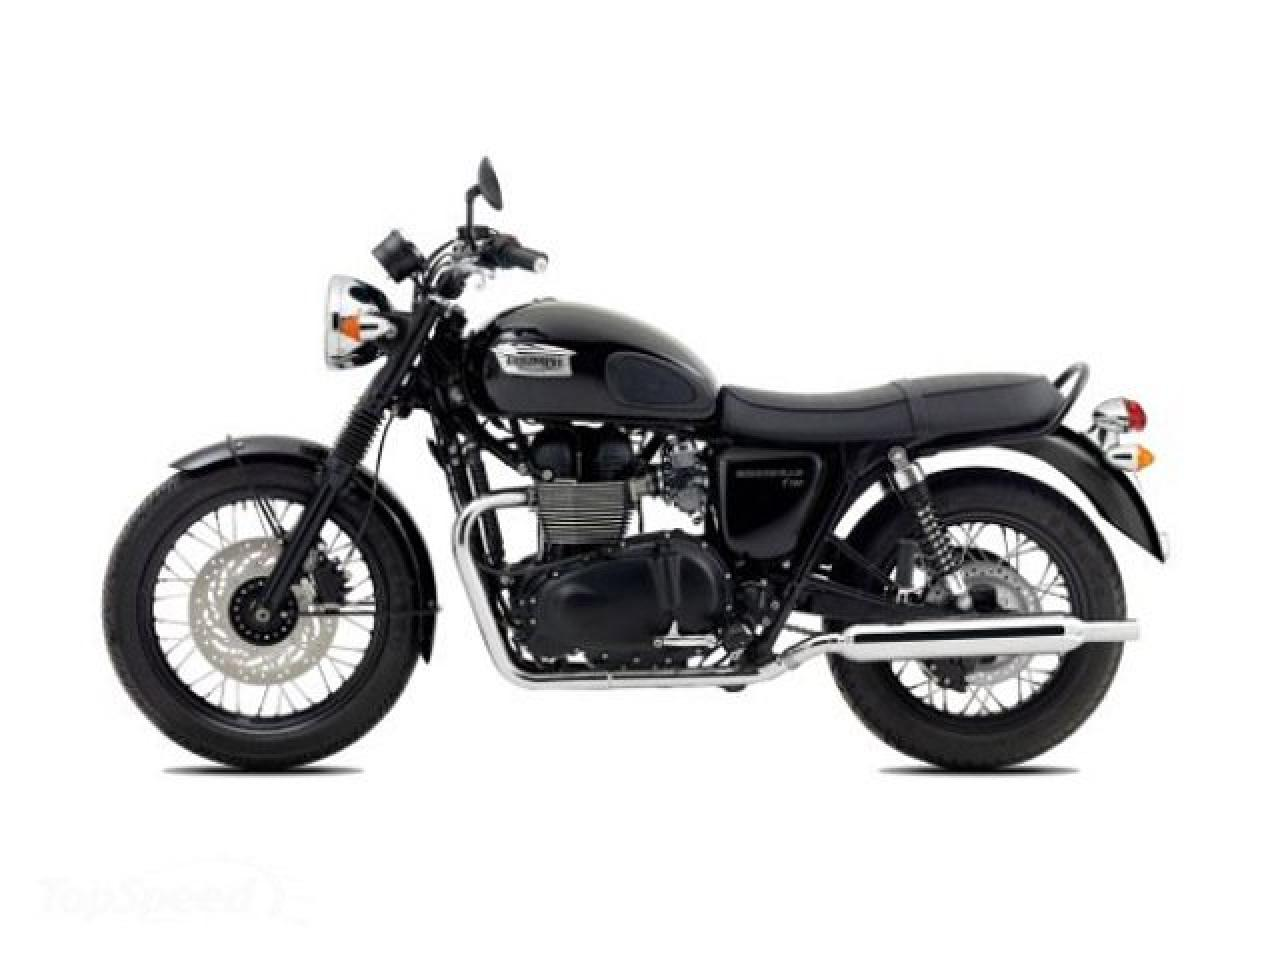 2014 triumph bonneville t100 moto zombdrive com. Black Bedroom Furniture Sets. Home Design Ideas